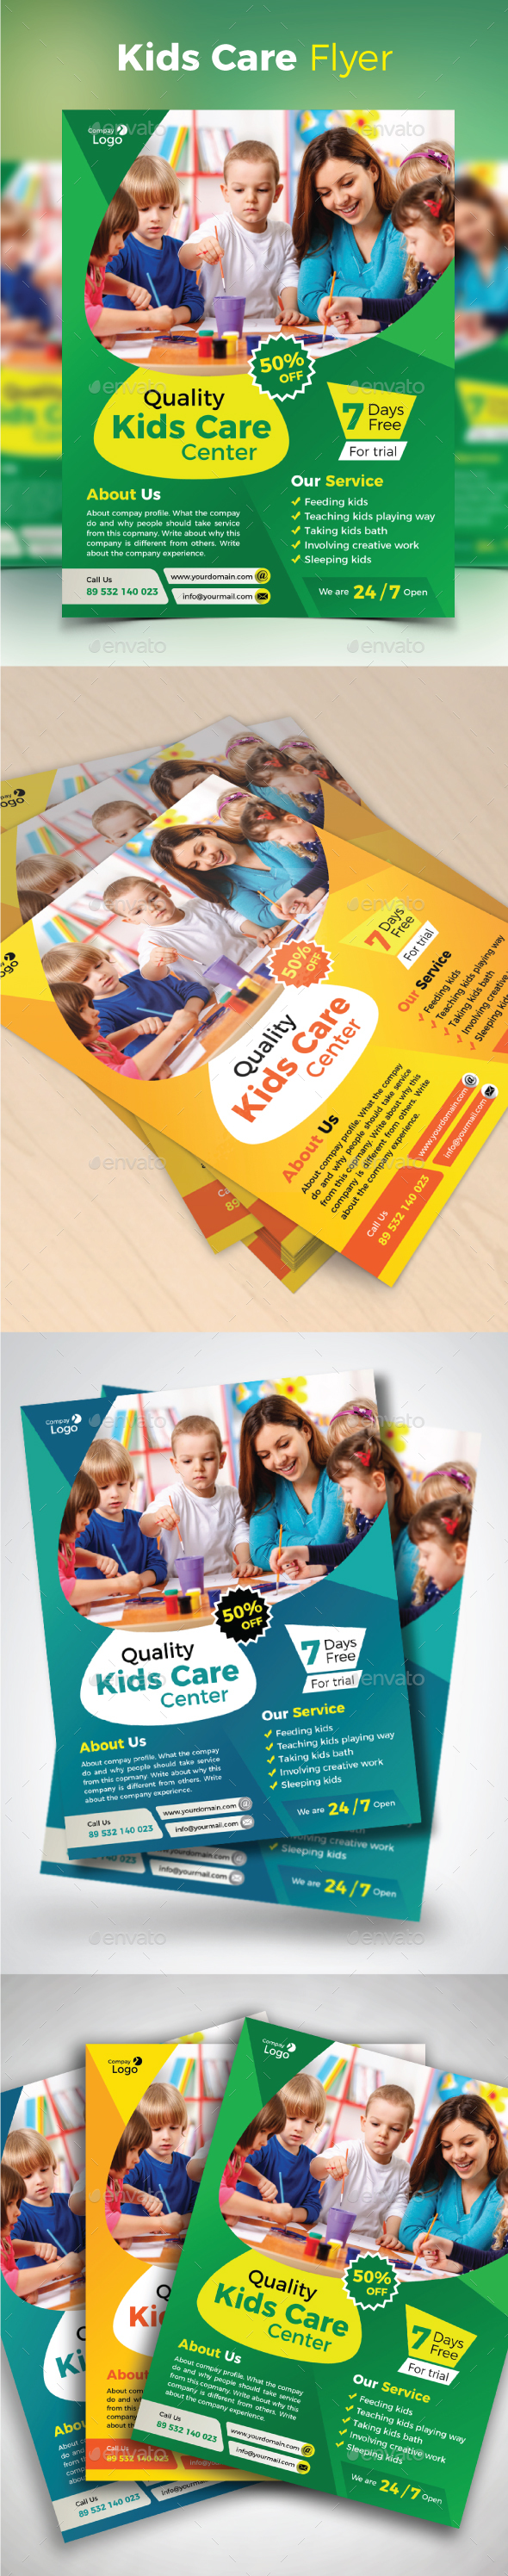 Kids Care Flyer - Corporate Flyers